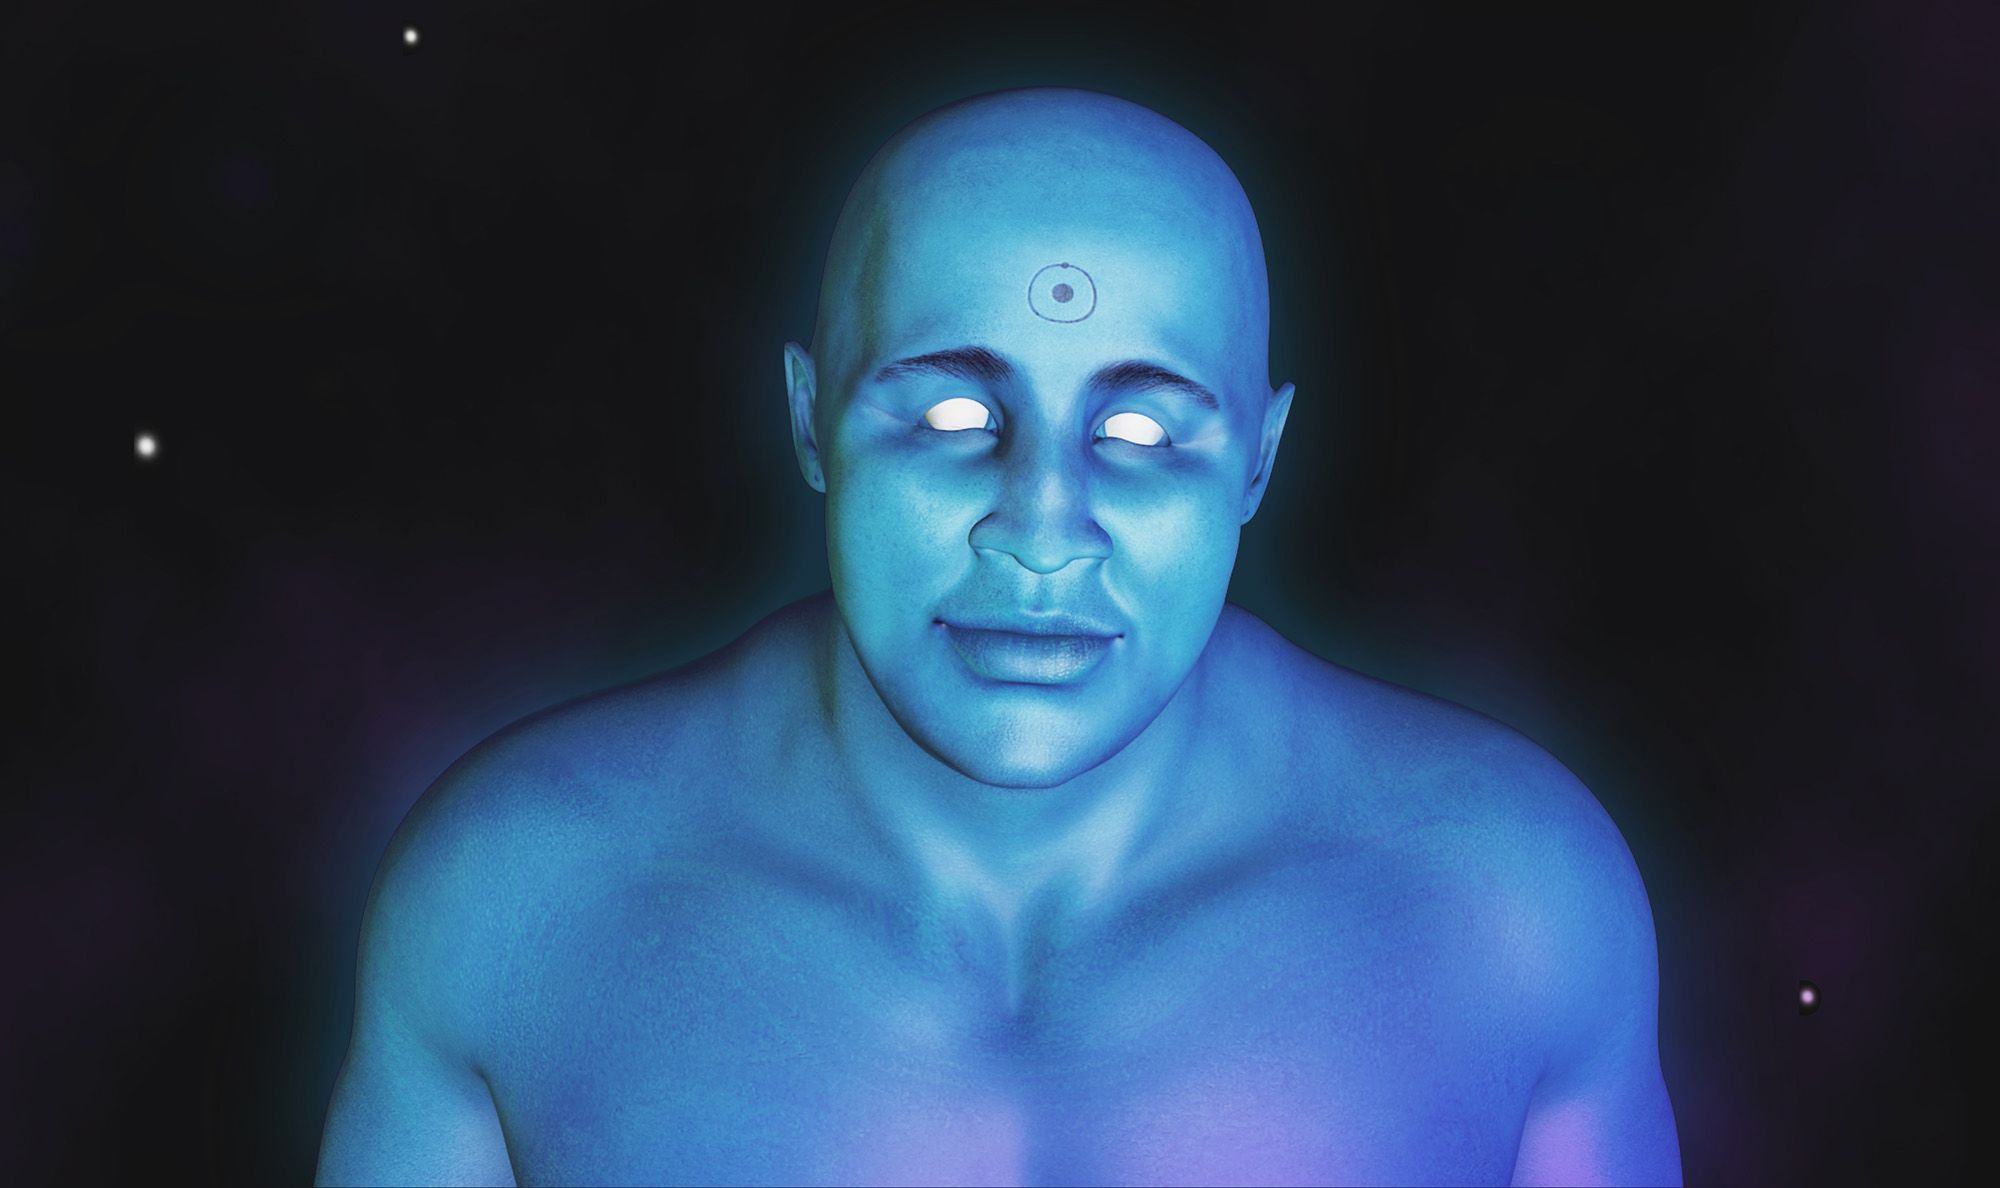 I'm Blue (If I Was █████ I Would Die)